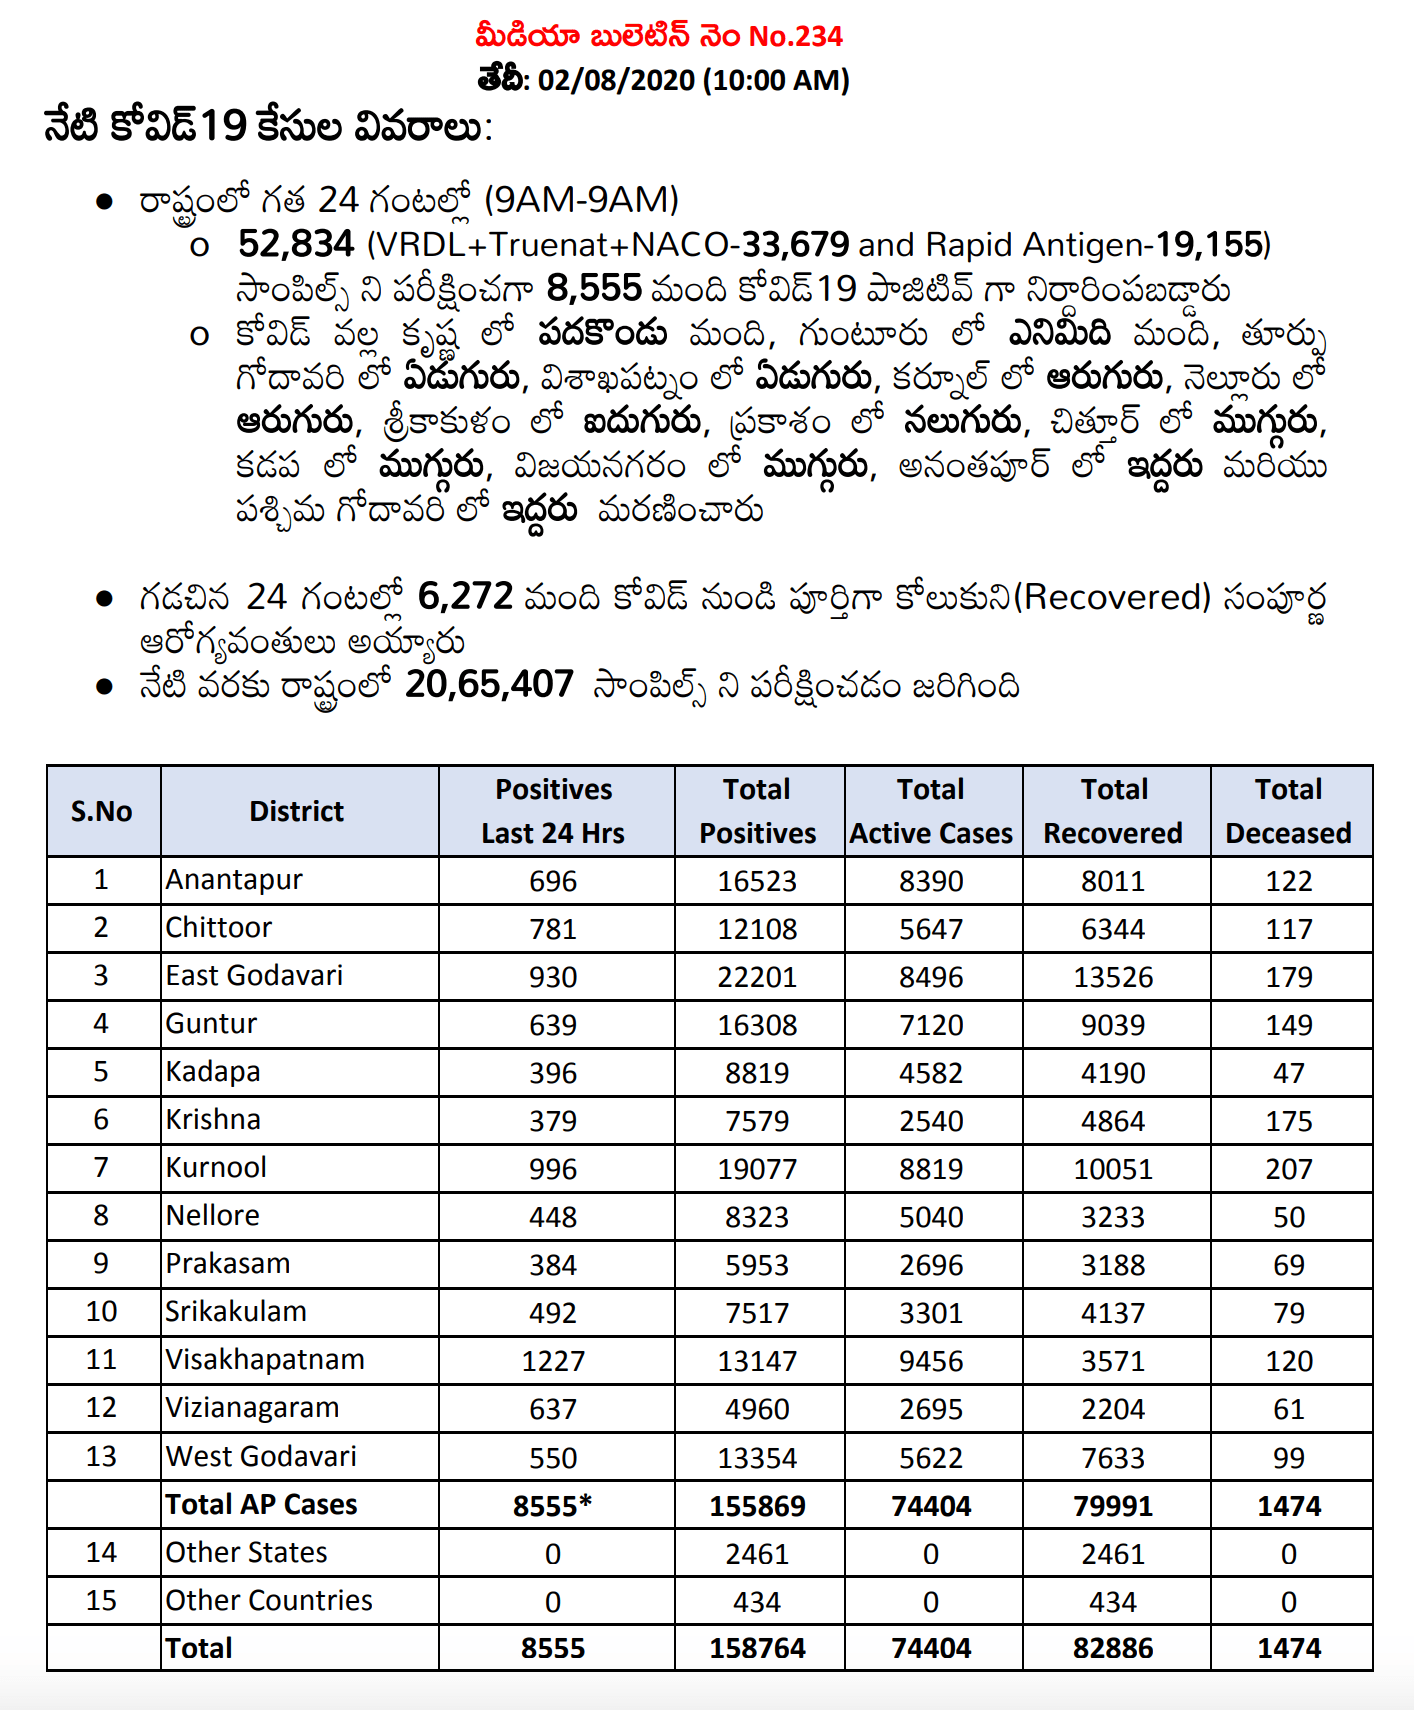 Andhra Pradesh Has 8,555 Positive Cases And The Total Positive Cases In The State Increased To 158,764 As Of 2nd August 10 AM